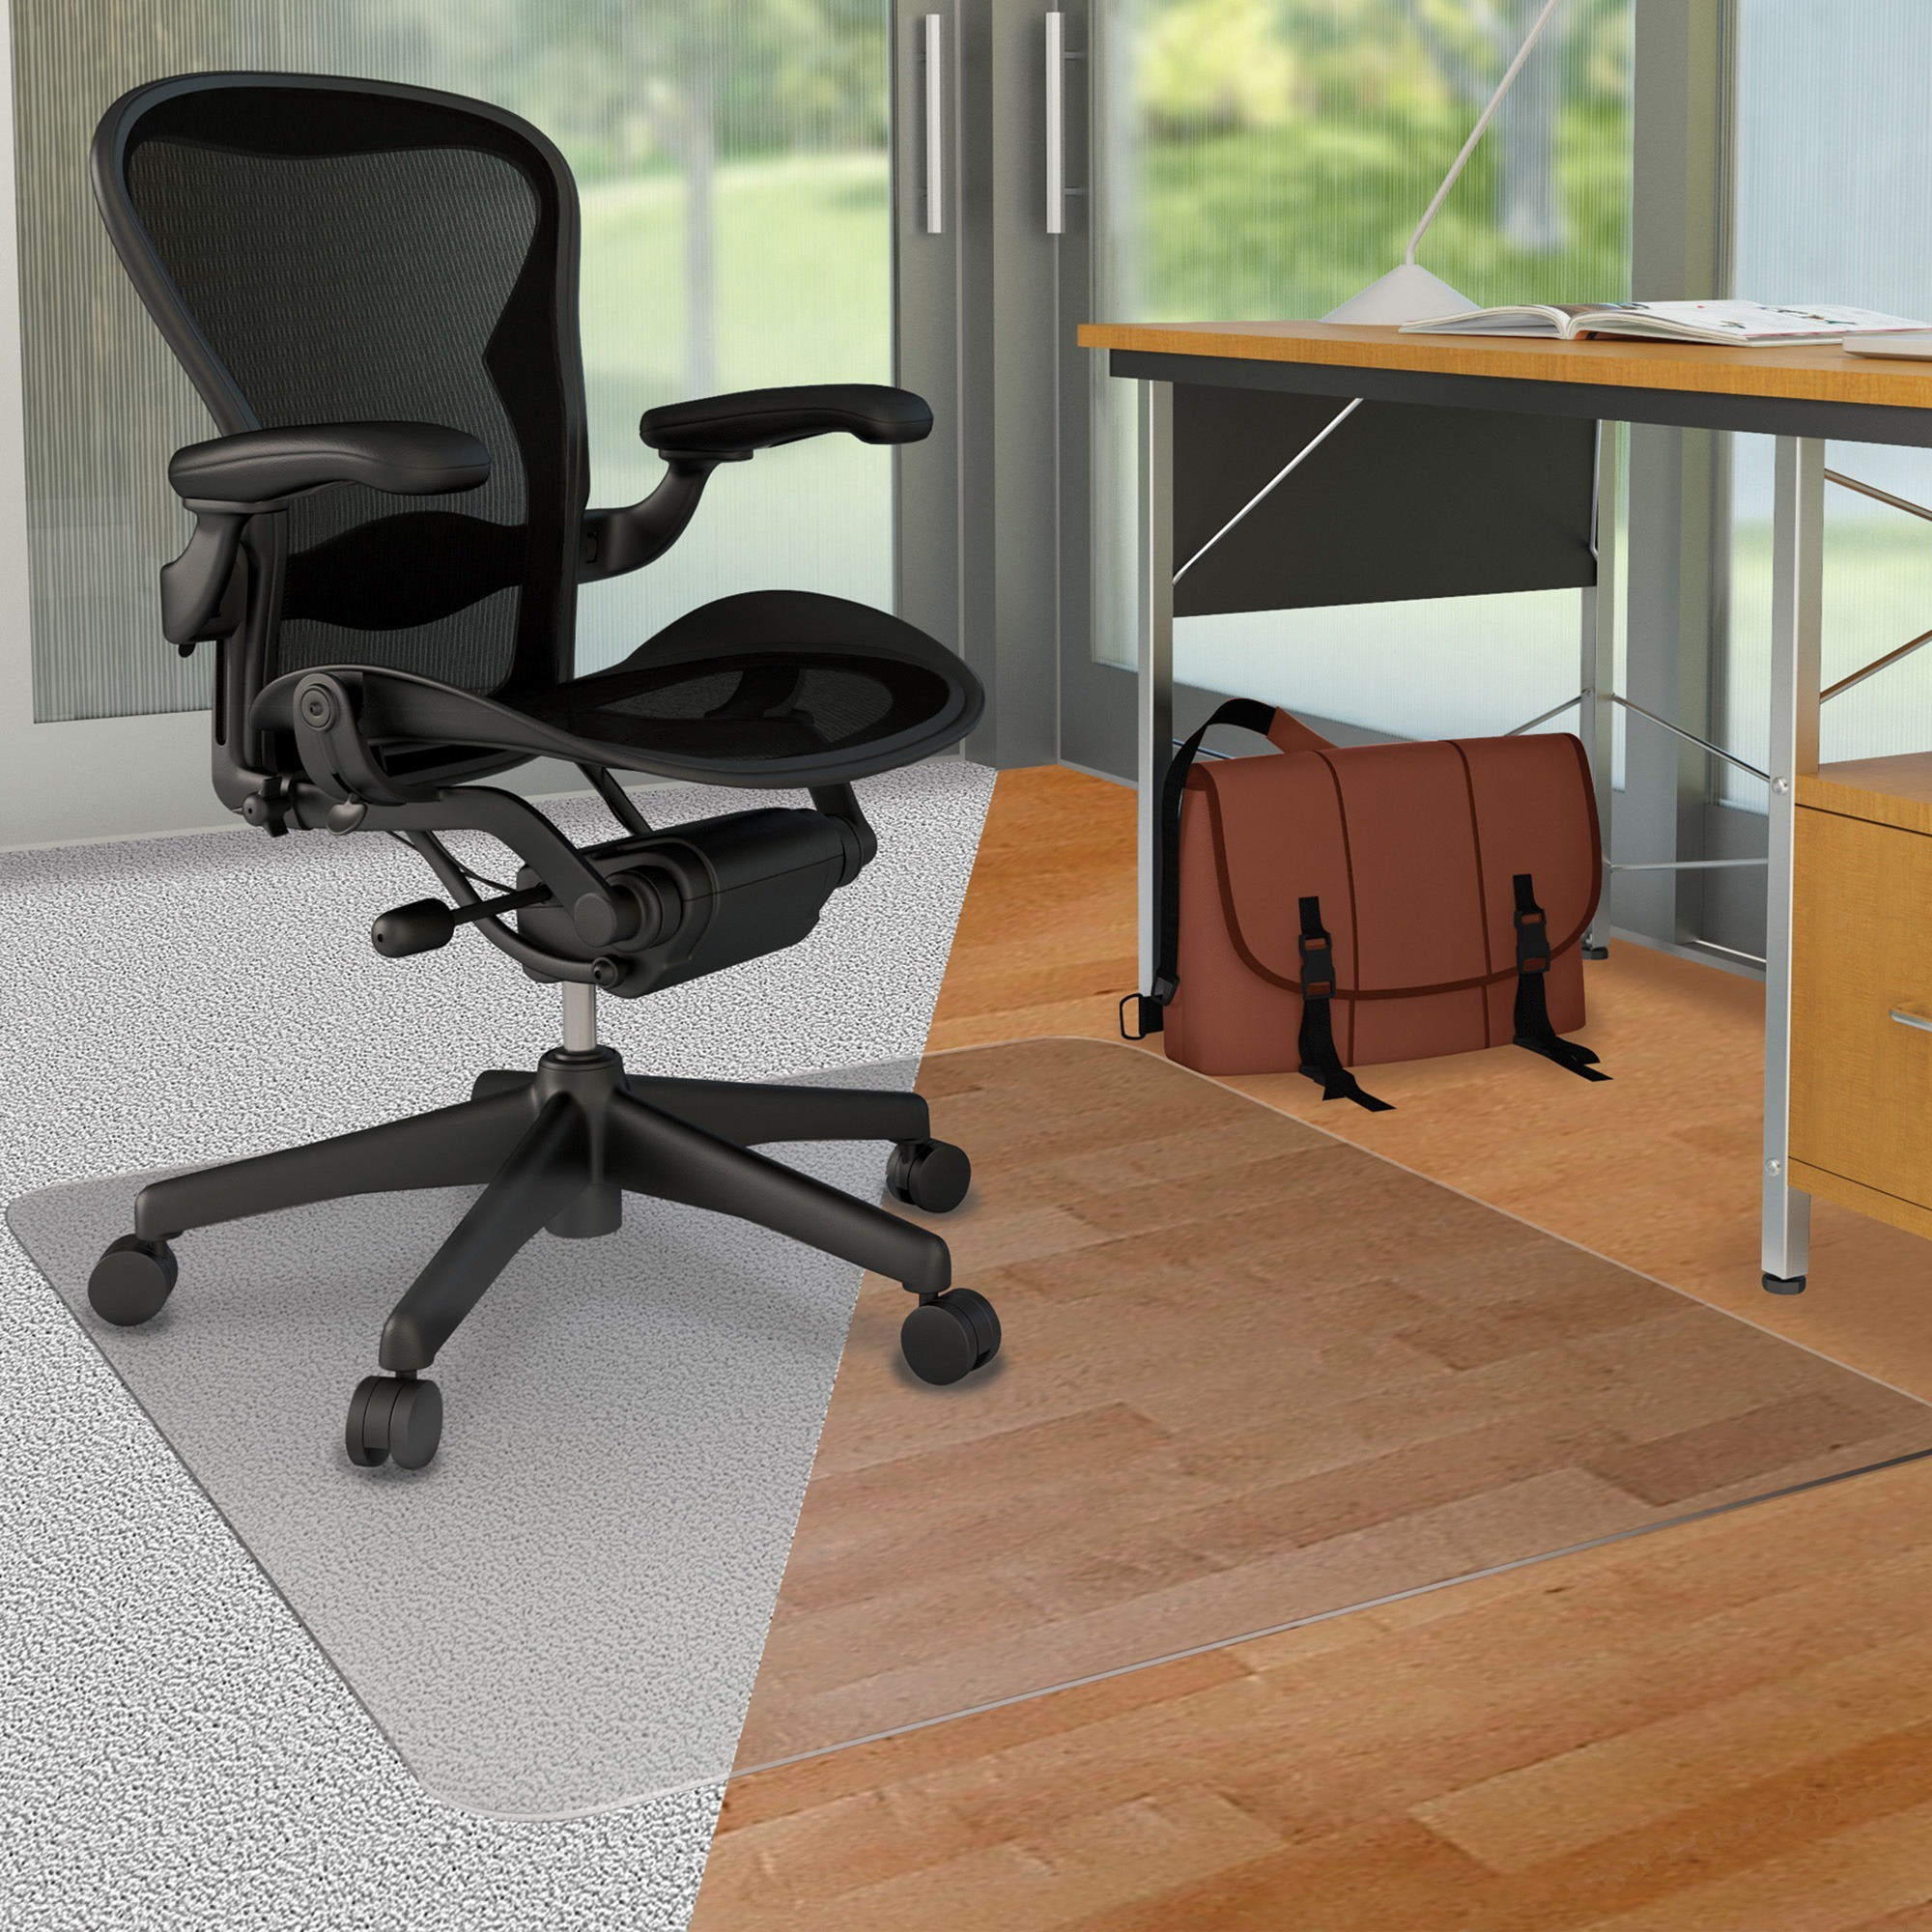 floor full mats of desk all size protector hardwood ikea office images mat chair